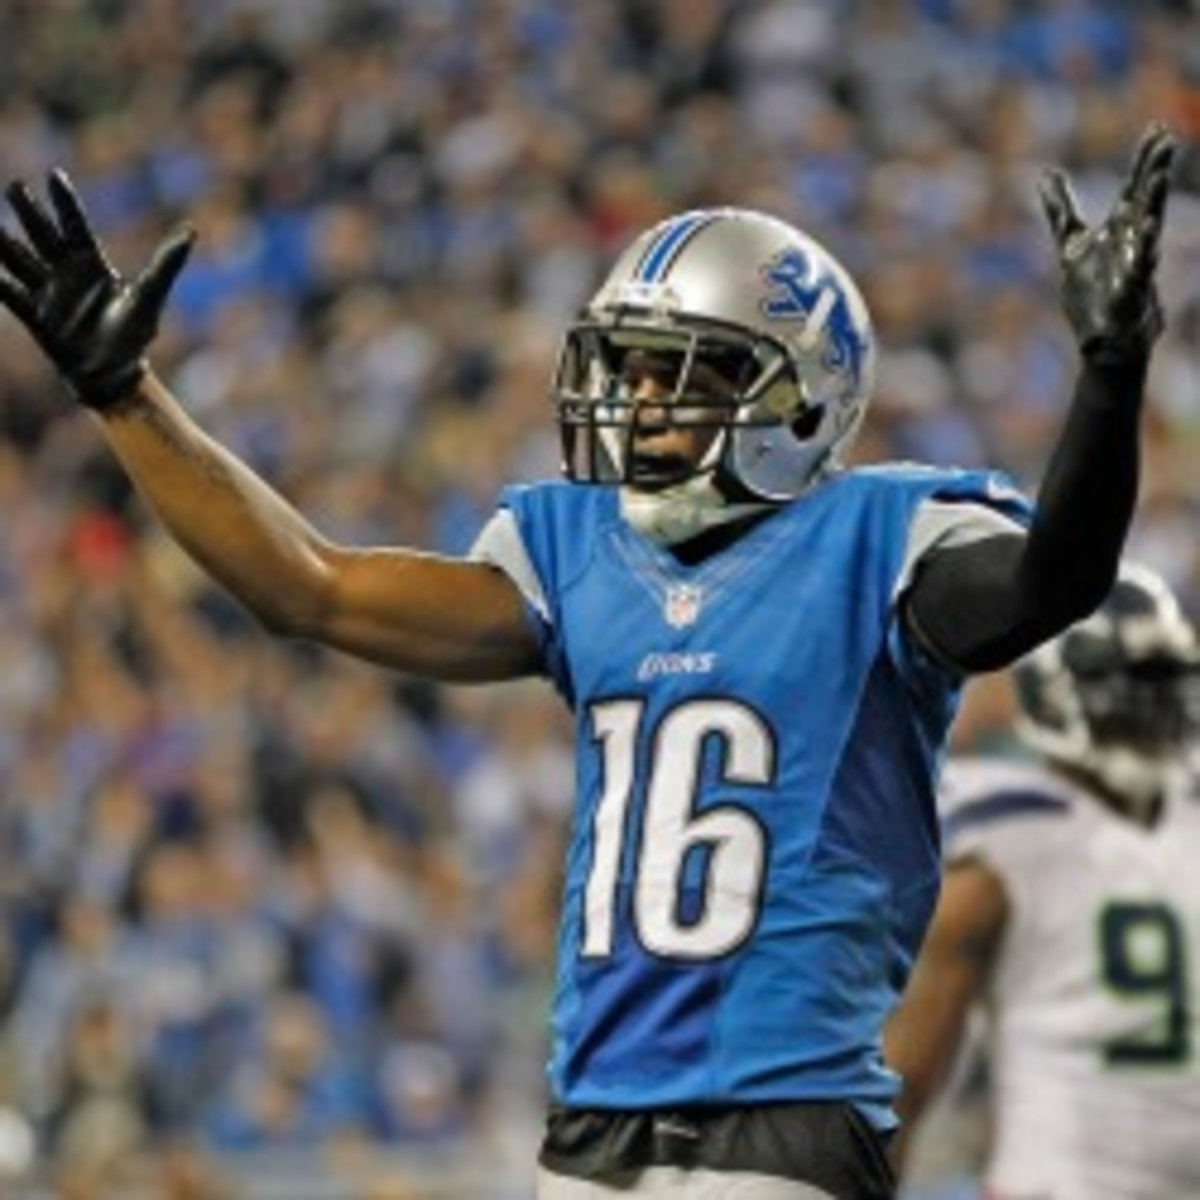 The Lions reportedly released disgruntled wideout Titus Young. (Leon Halip/Getty Images)